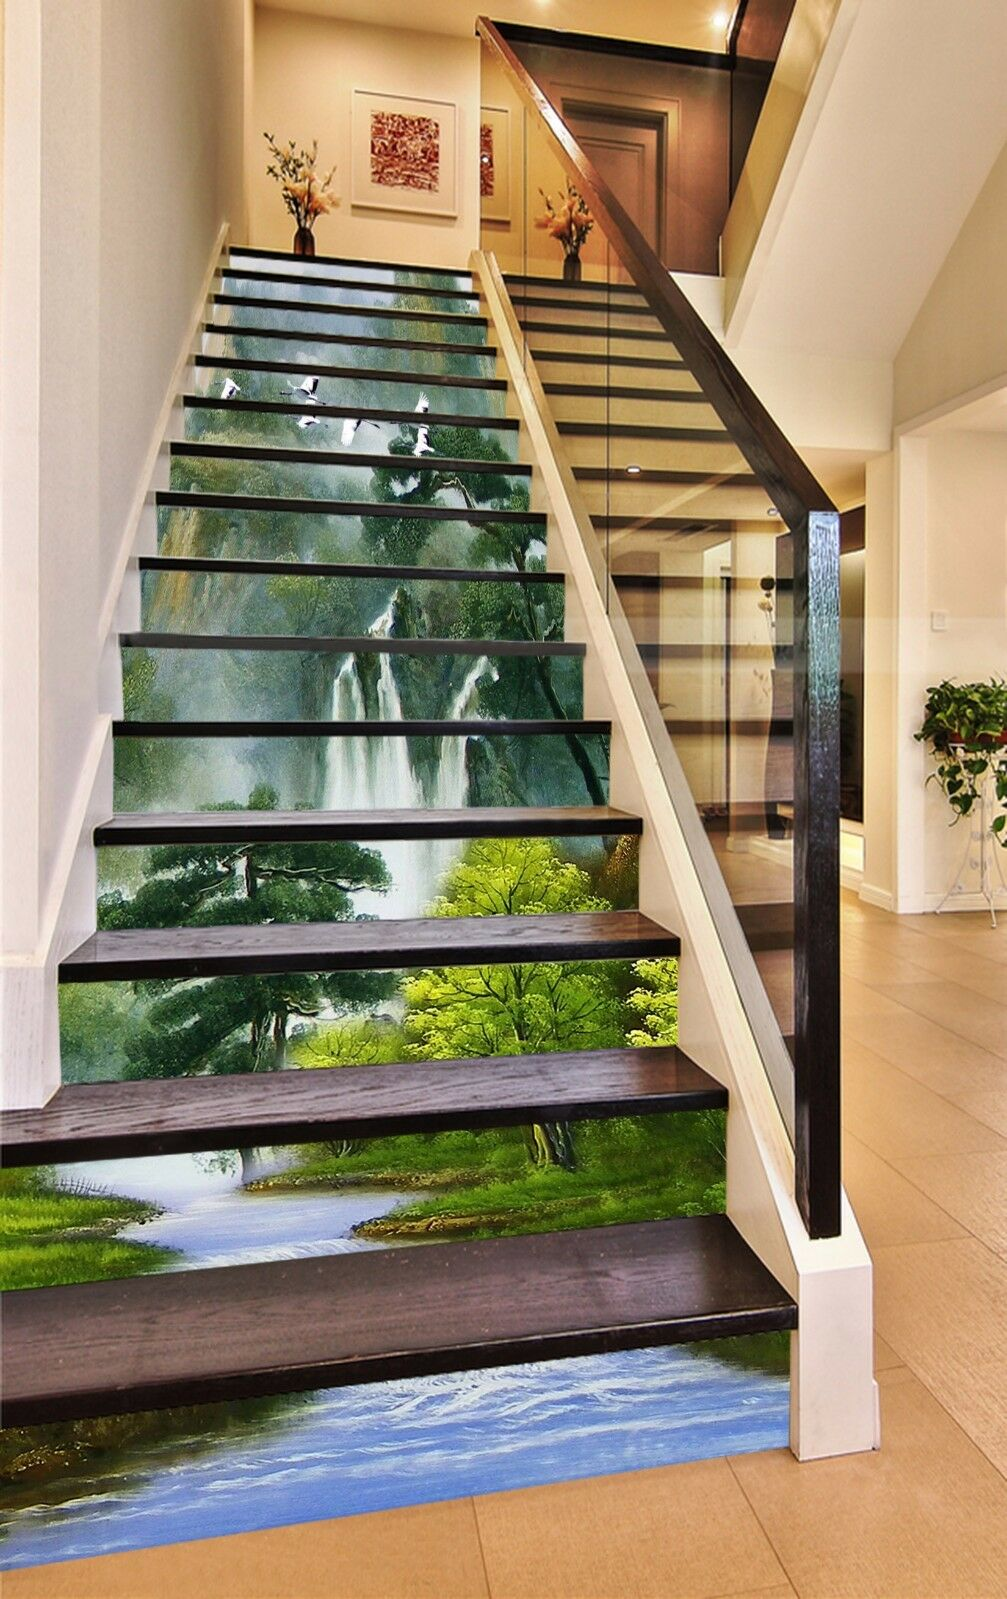 3D Forest Painting 8Stair Risers Decoration Photo Mural Vinyl Decal Wallpaper AU